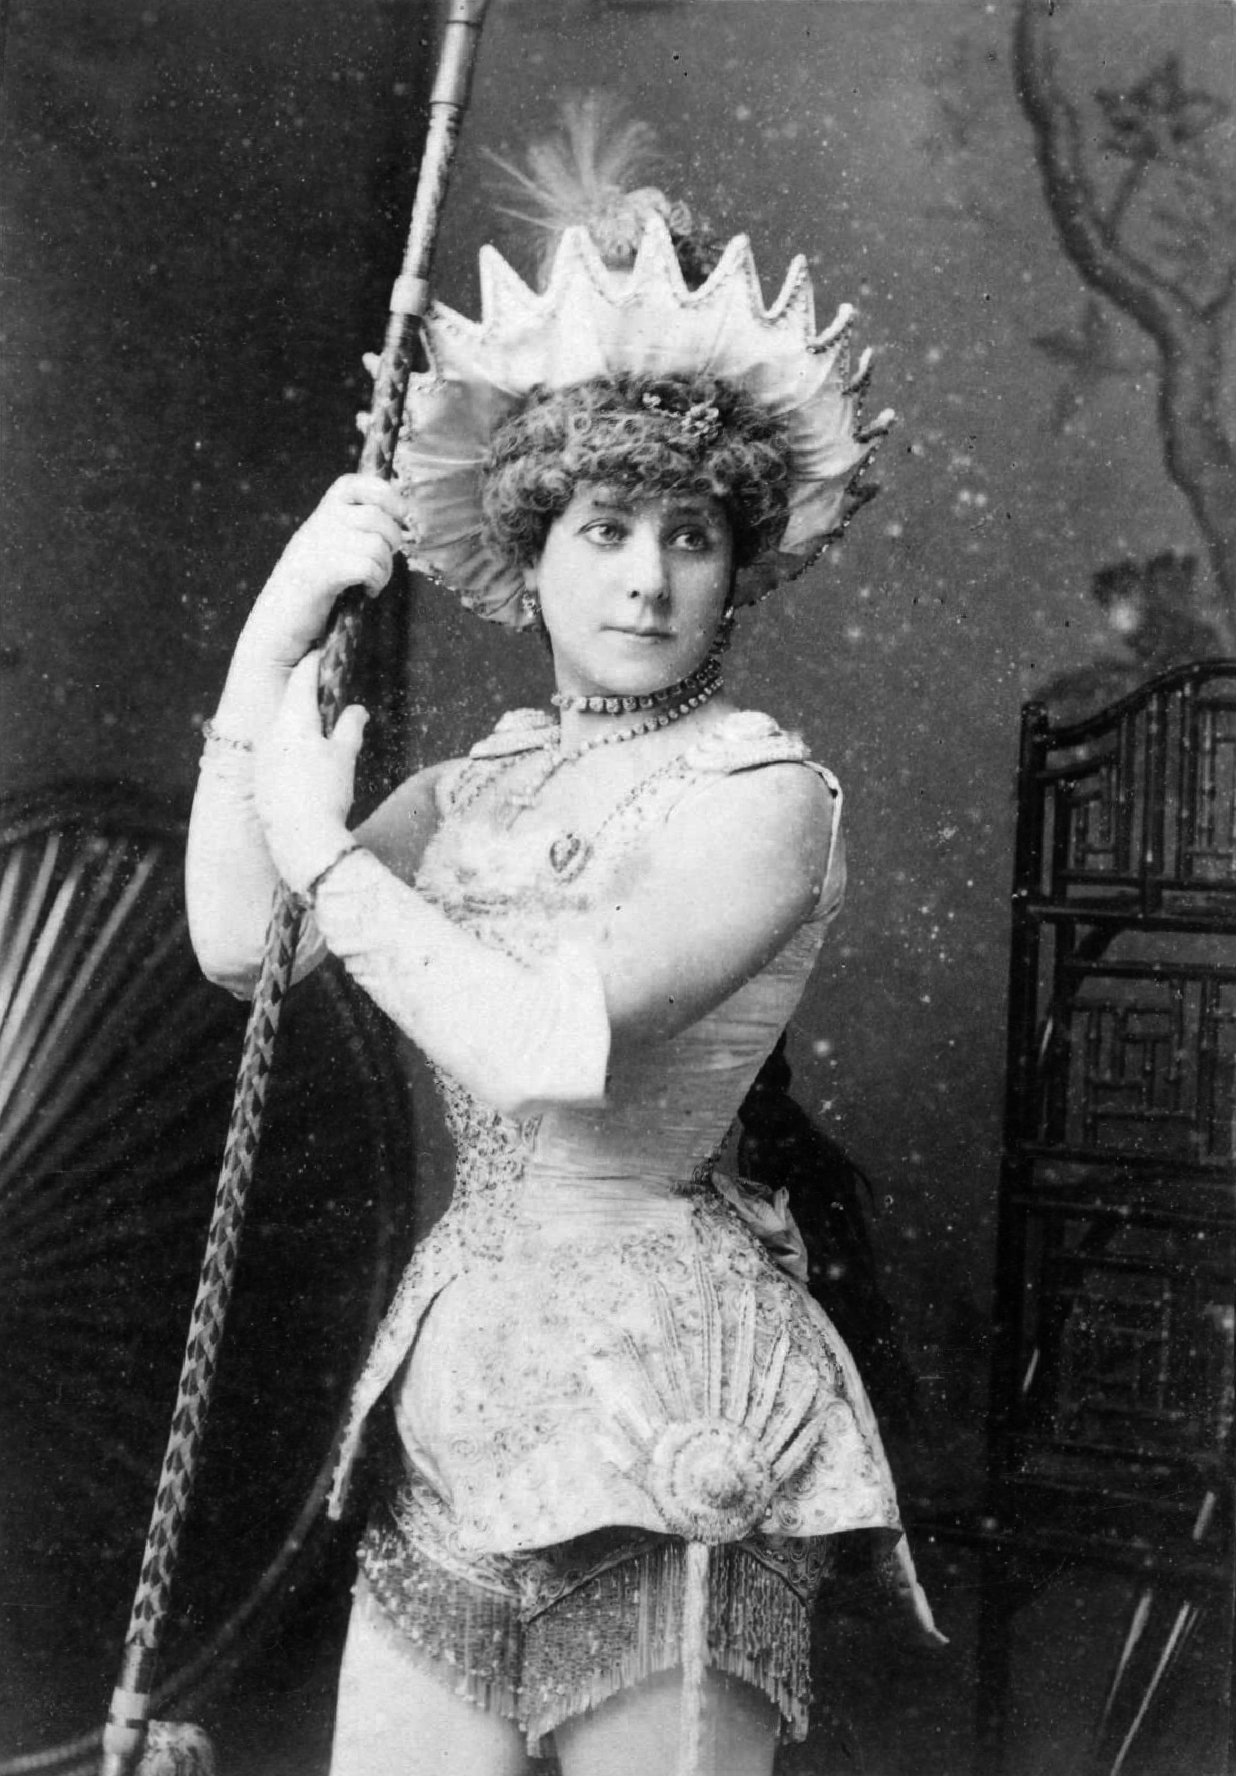 Nellie Farren in Aladdin, 1881 . Upcoming in Sotheby's auction. Photo by W. & D. Downey Photographers, London, via Wikimedia Commons